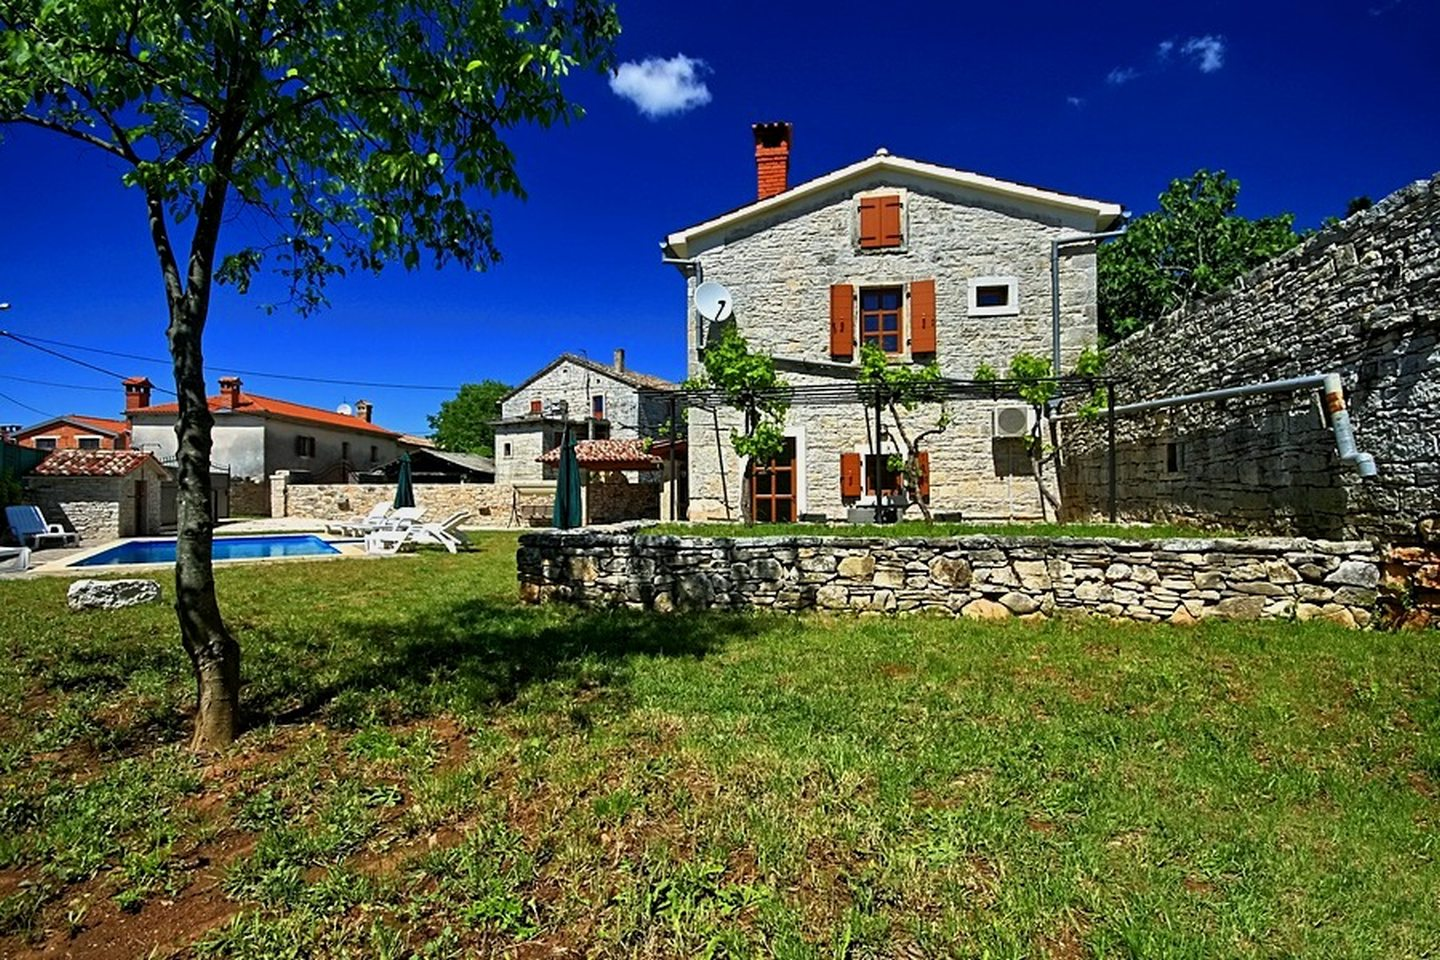 https://www.istria-home.com/bundles/web/images/photos/110/110_31_31.jpg